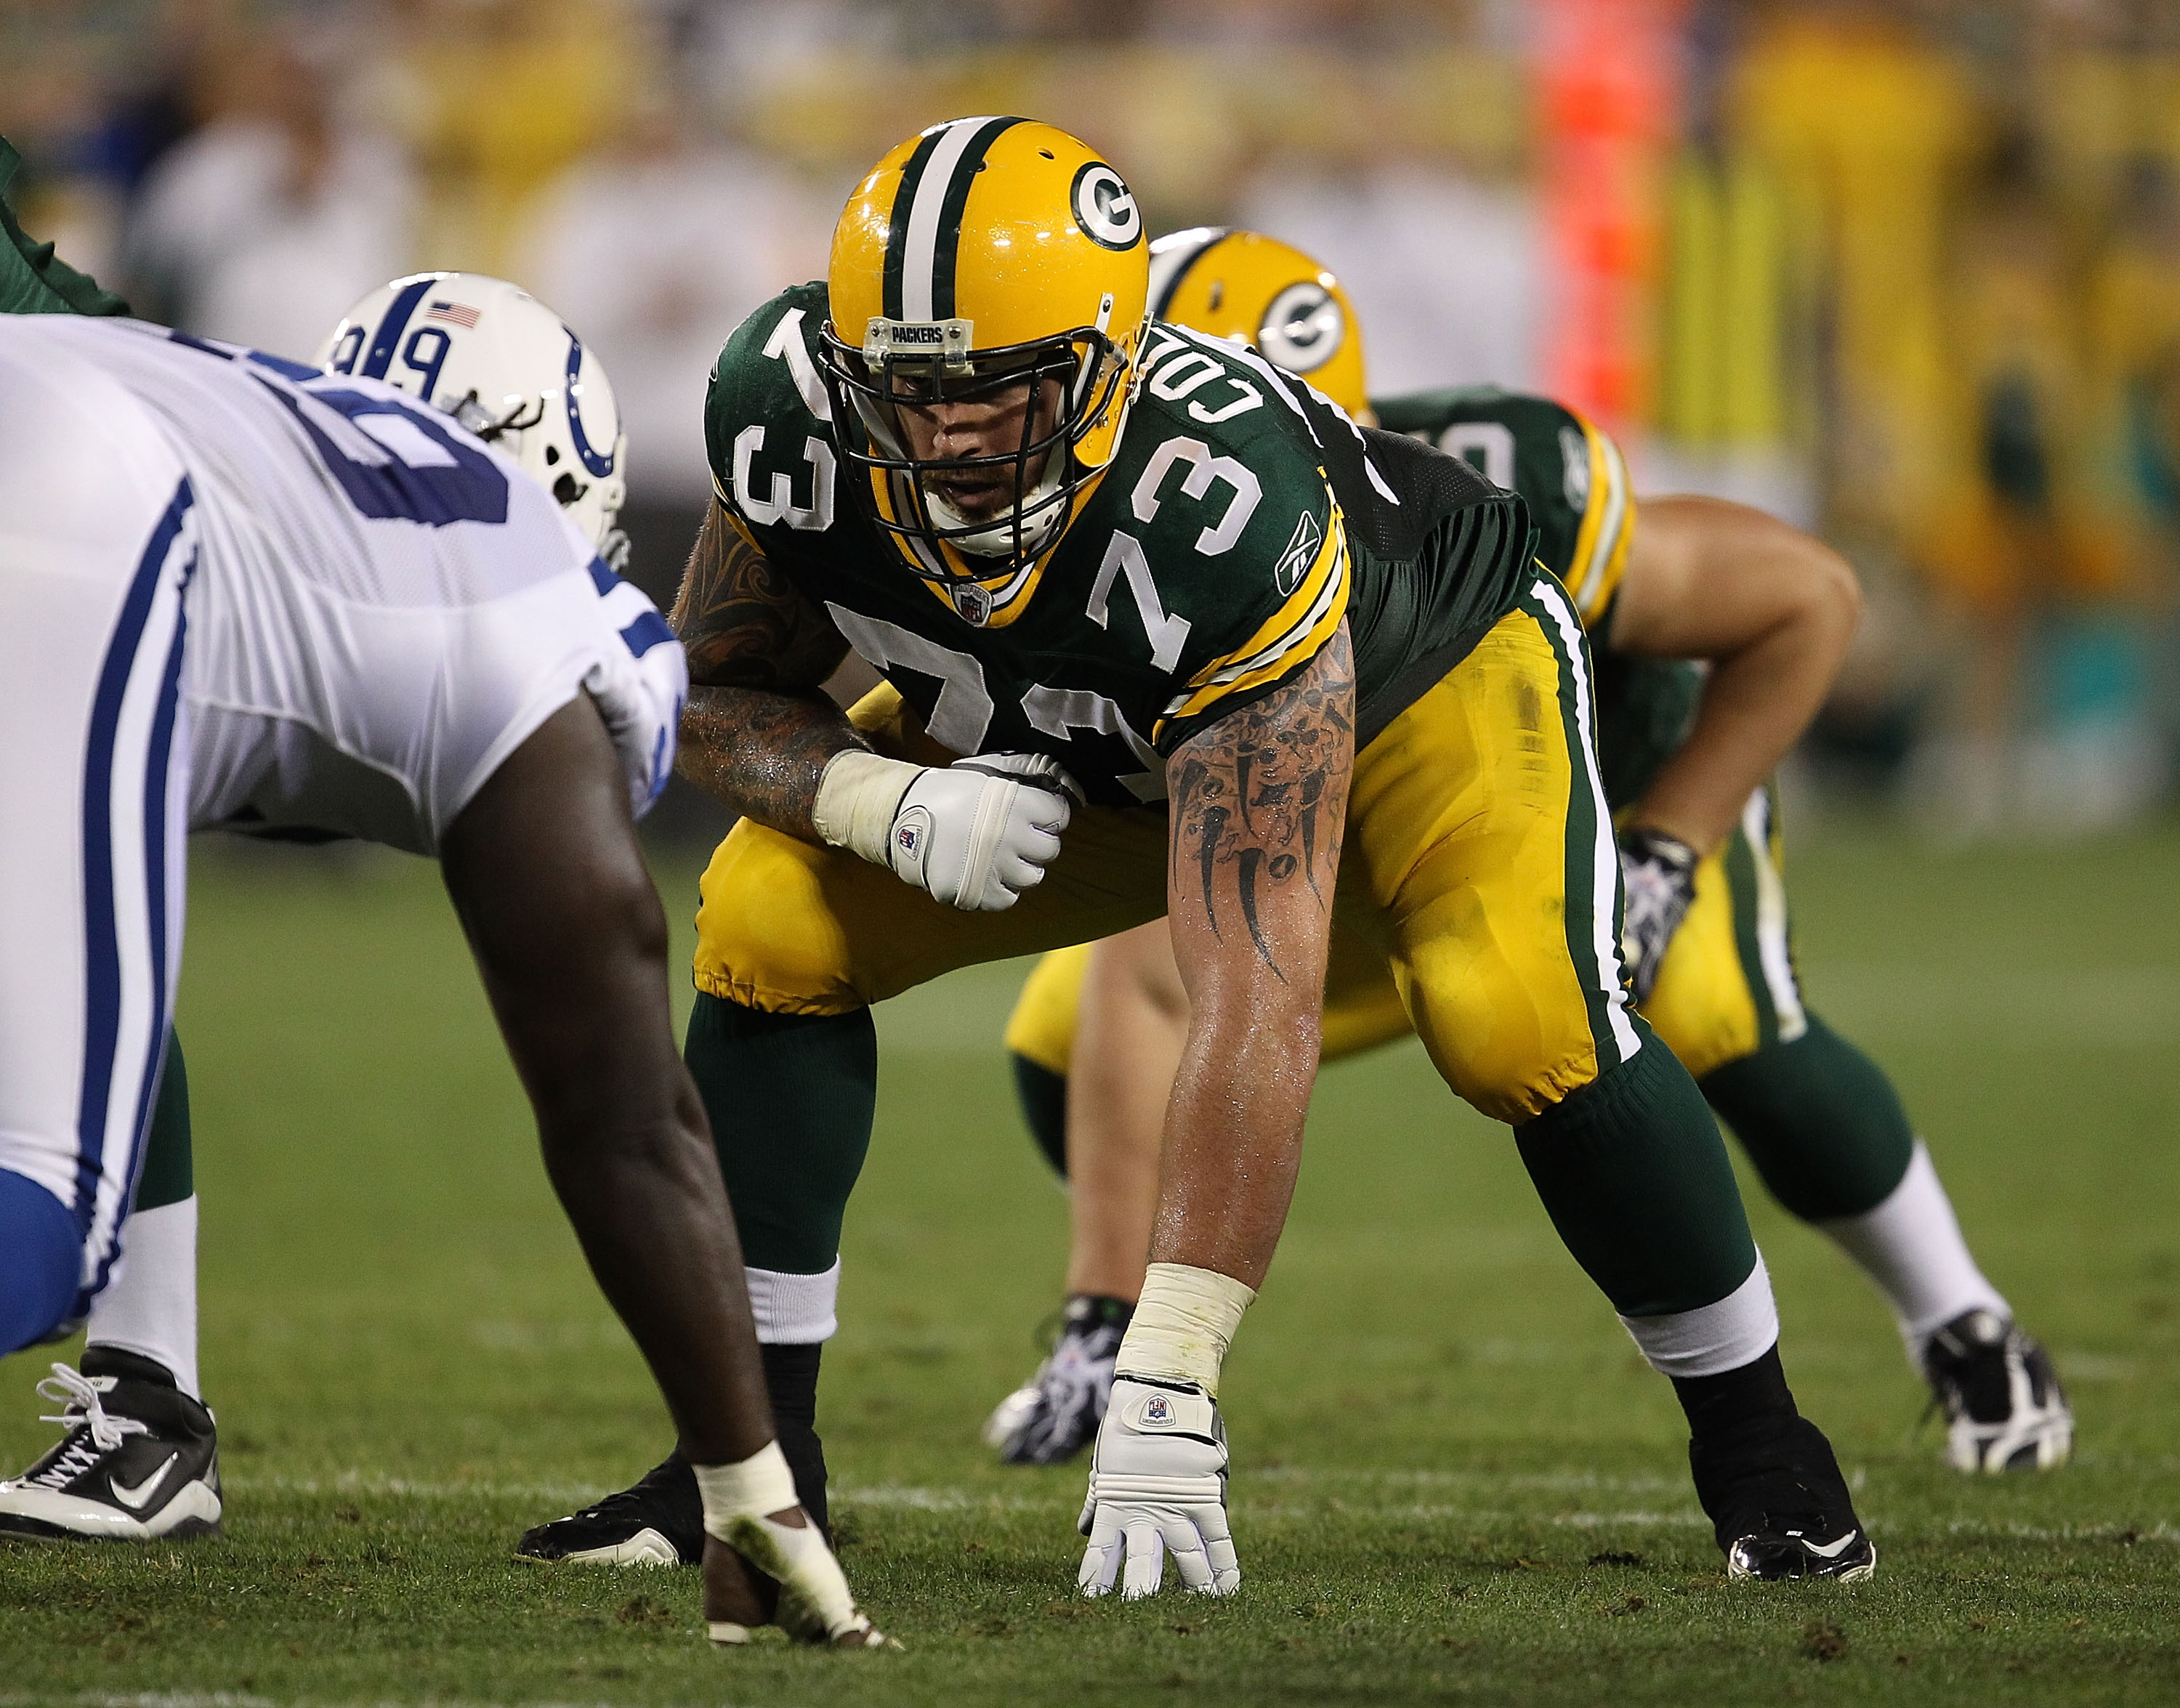 GREEN BAY, WI - AUGUST 26: Daryn Colledge #73 of the Green Bay Packers awaits the start of play against the Indianapolis Colts during a preseason game at Lambeau Field on August 26, 2010 in Green Bay, Wisconsin. The Packers defeated the Colts 59-24. (Phot